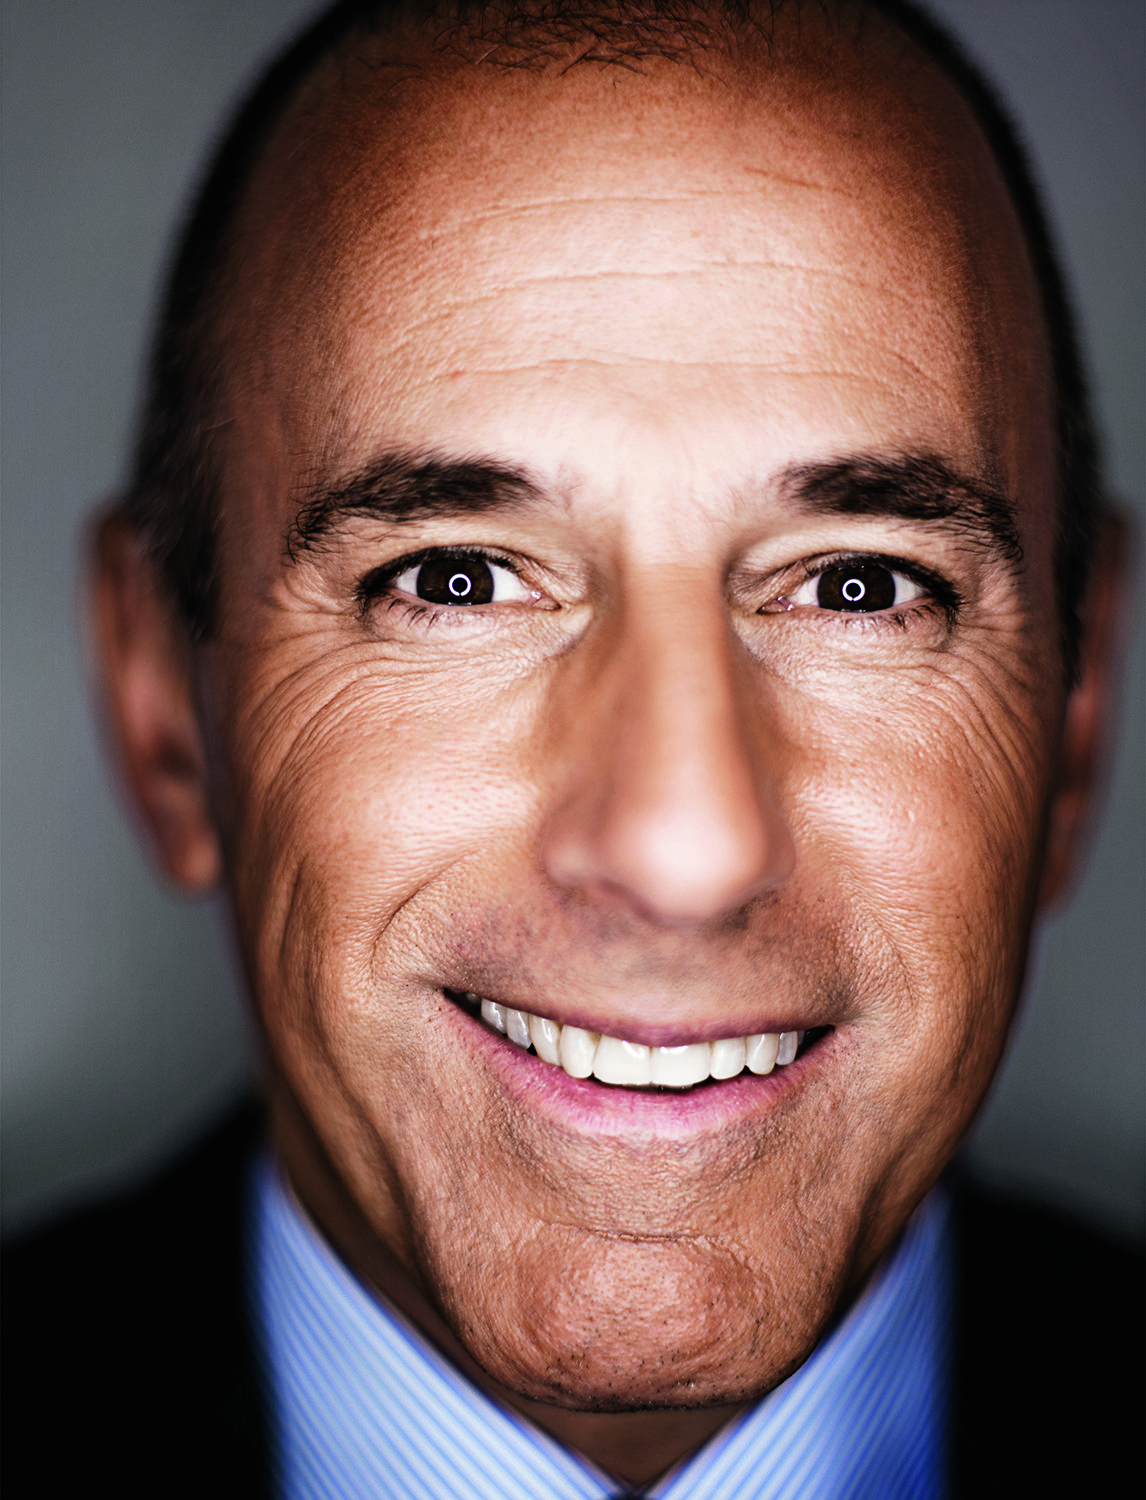 Matt Lauer Opens Up On Family Work And Remaining Humble In Esquire